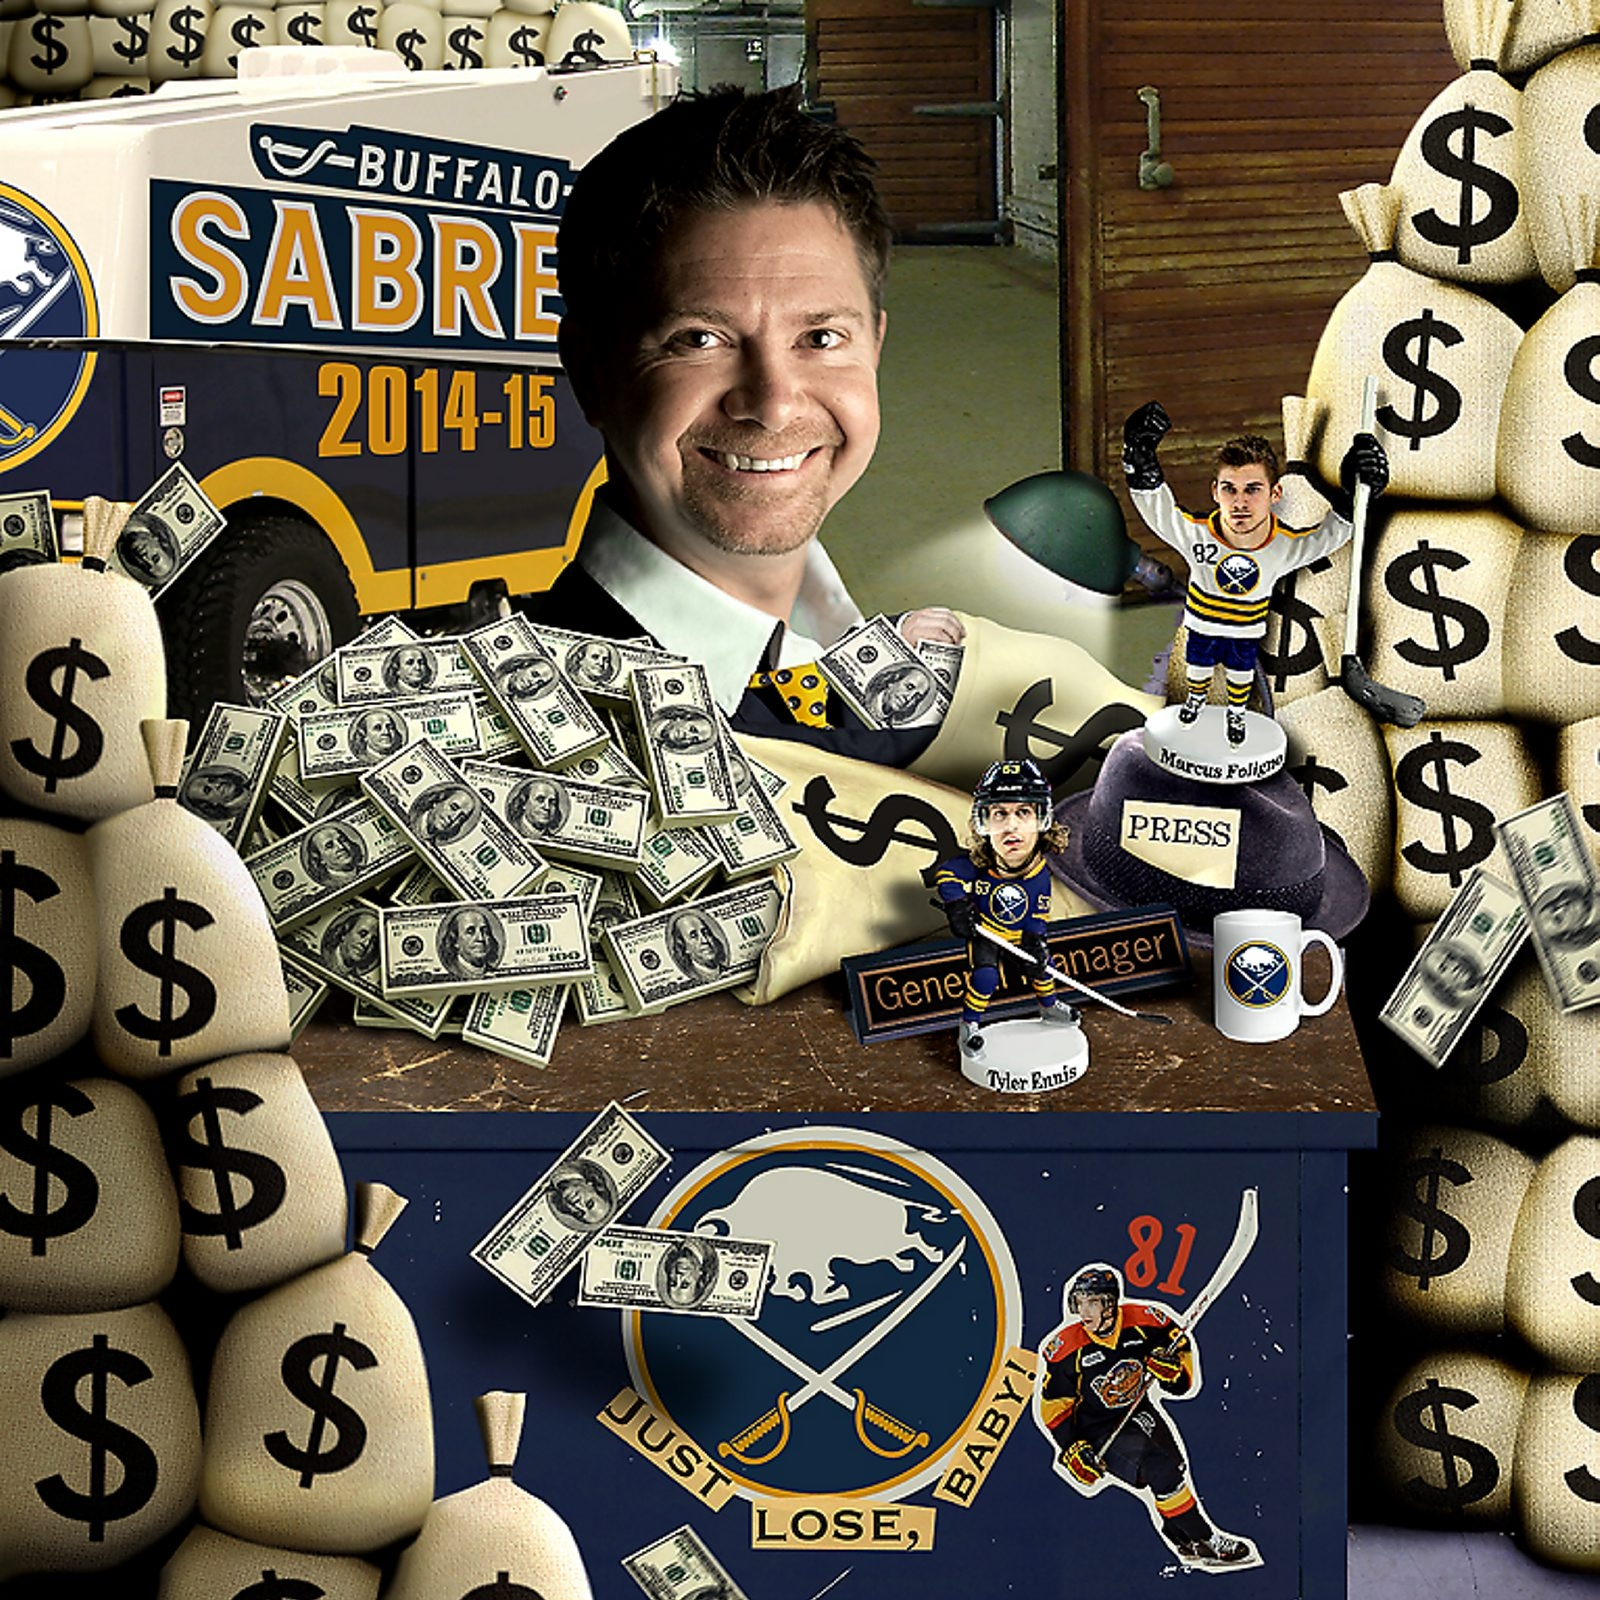 News Sports Reporter John Vogl plays Sabres GM for the Day, taking on the challenge of spending 'wildly to rebuild the worst team in the NHL.' (Illustration by Dan Zakroczemski / Buffalo News)